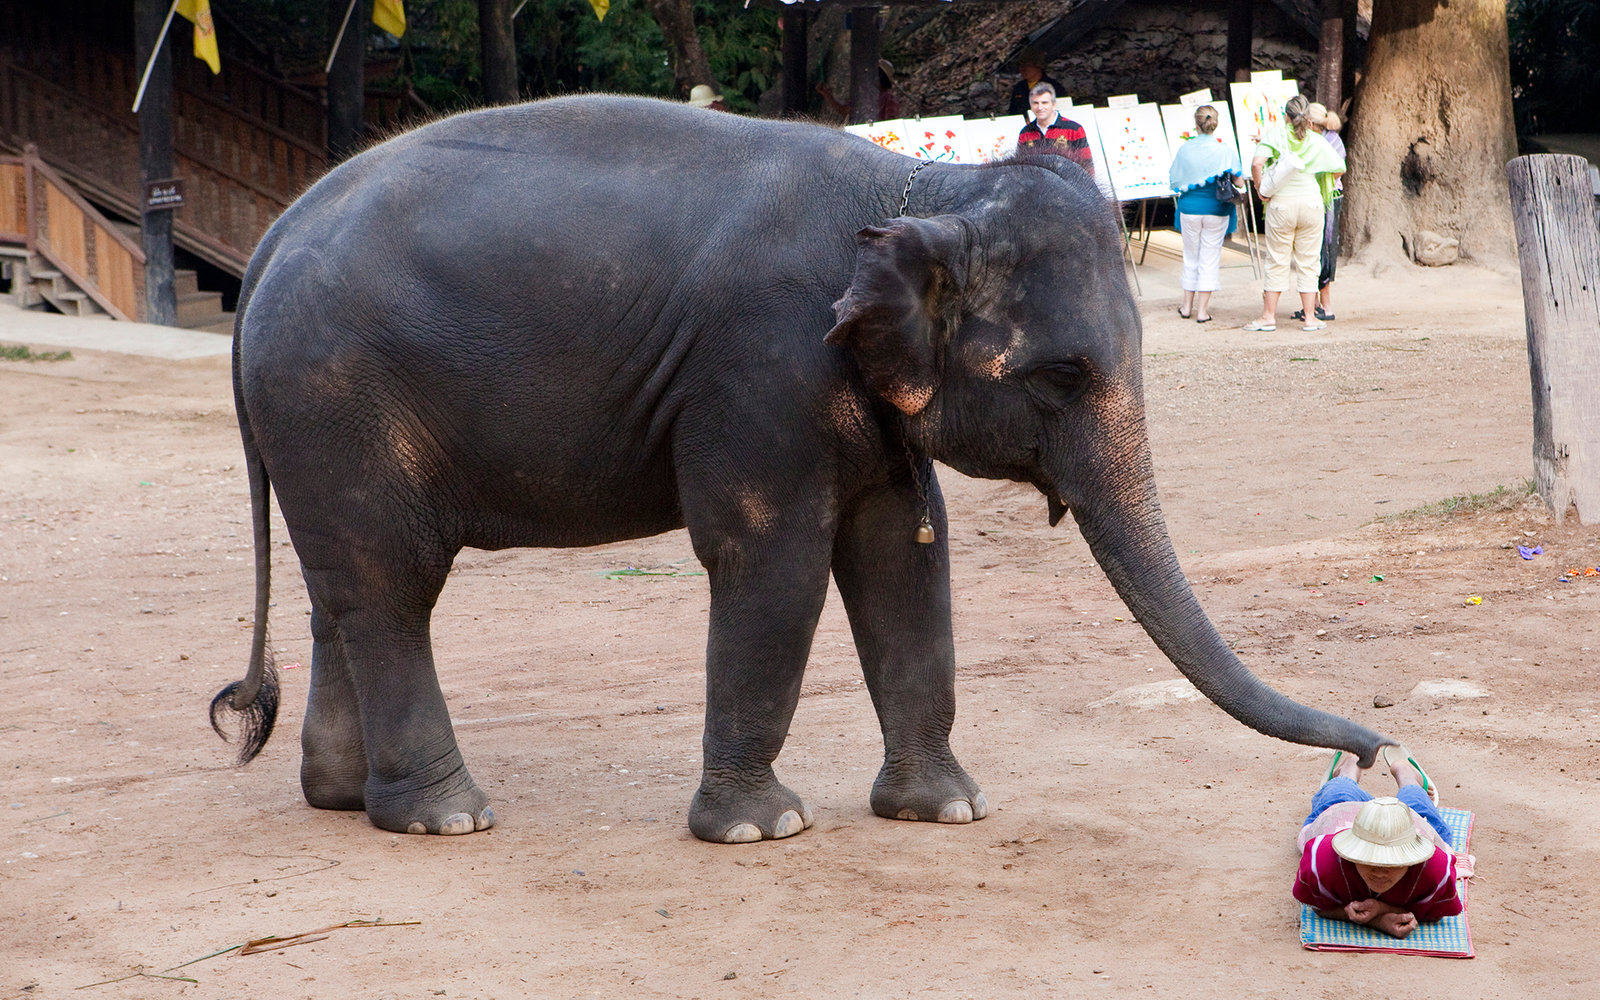 Elephant gives tourist a massage in Thailand